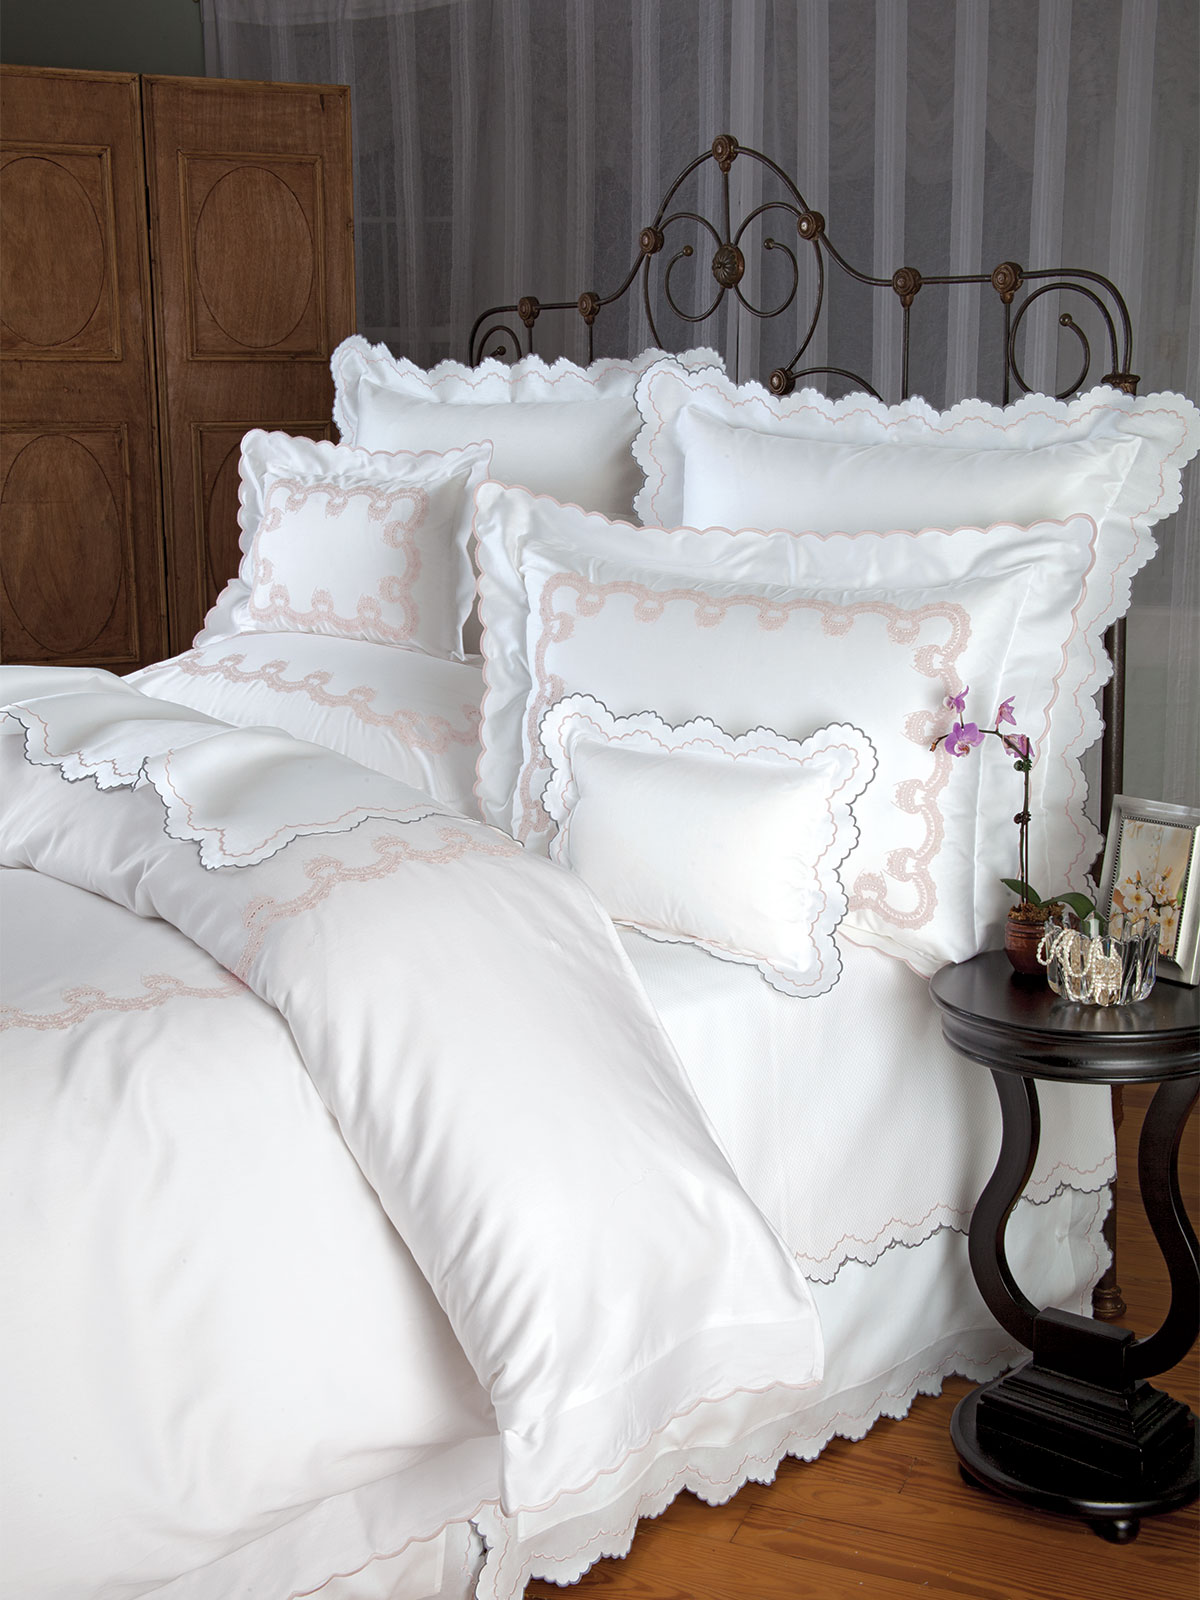 Crown Lace Luxury Bedding Italian Bed Linens